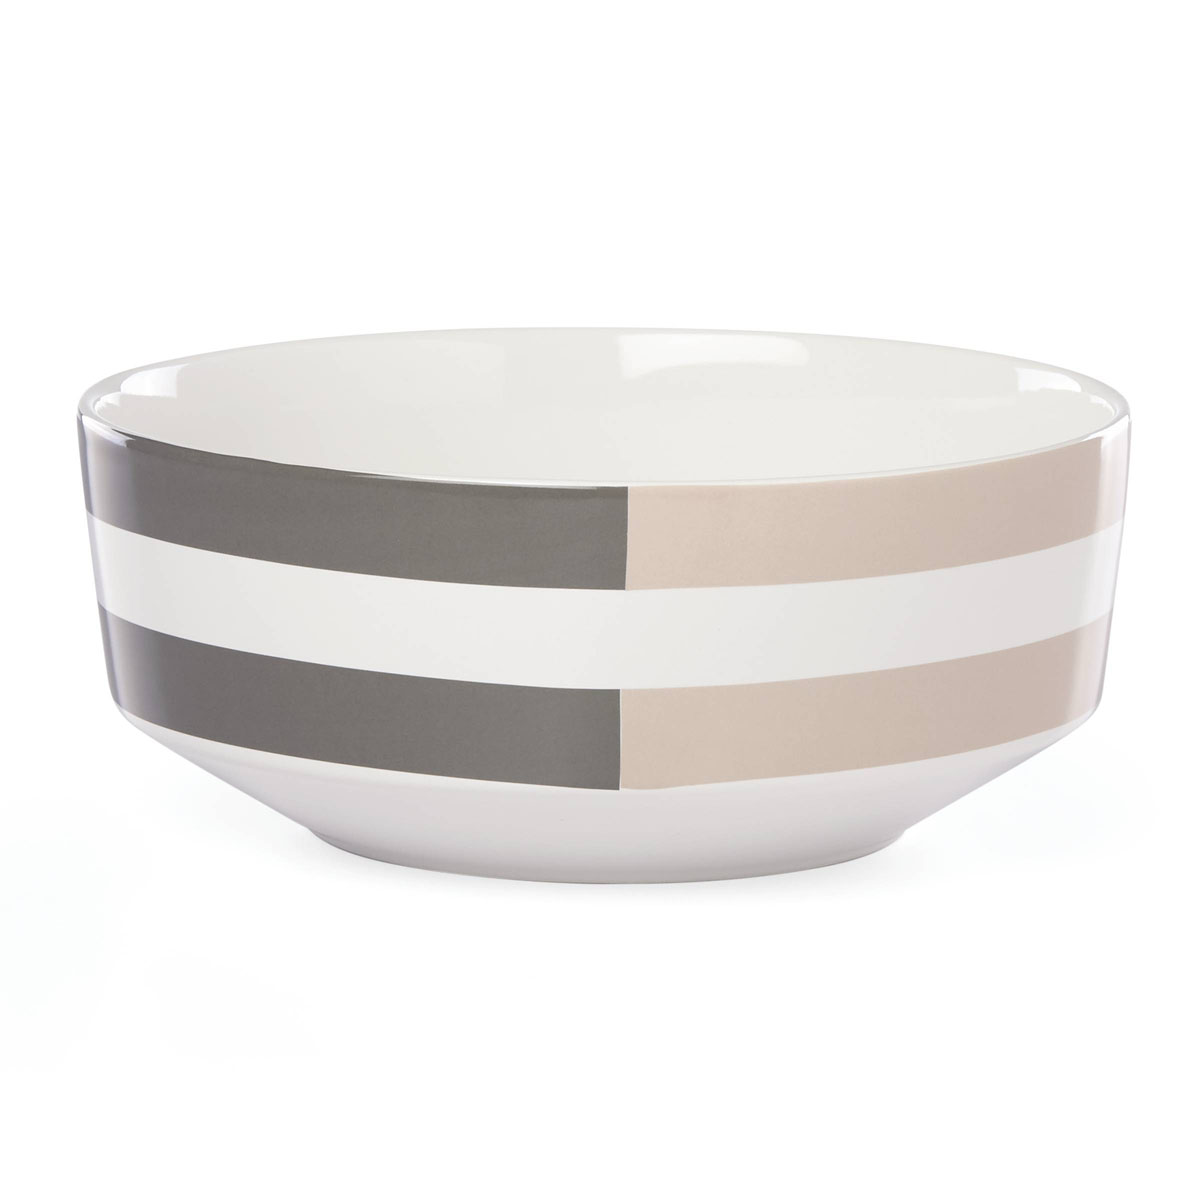 kate spade new york Lenox Stoneware Nolita Gray Serving Bowl